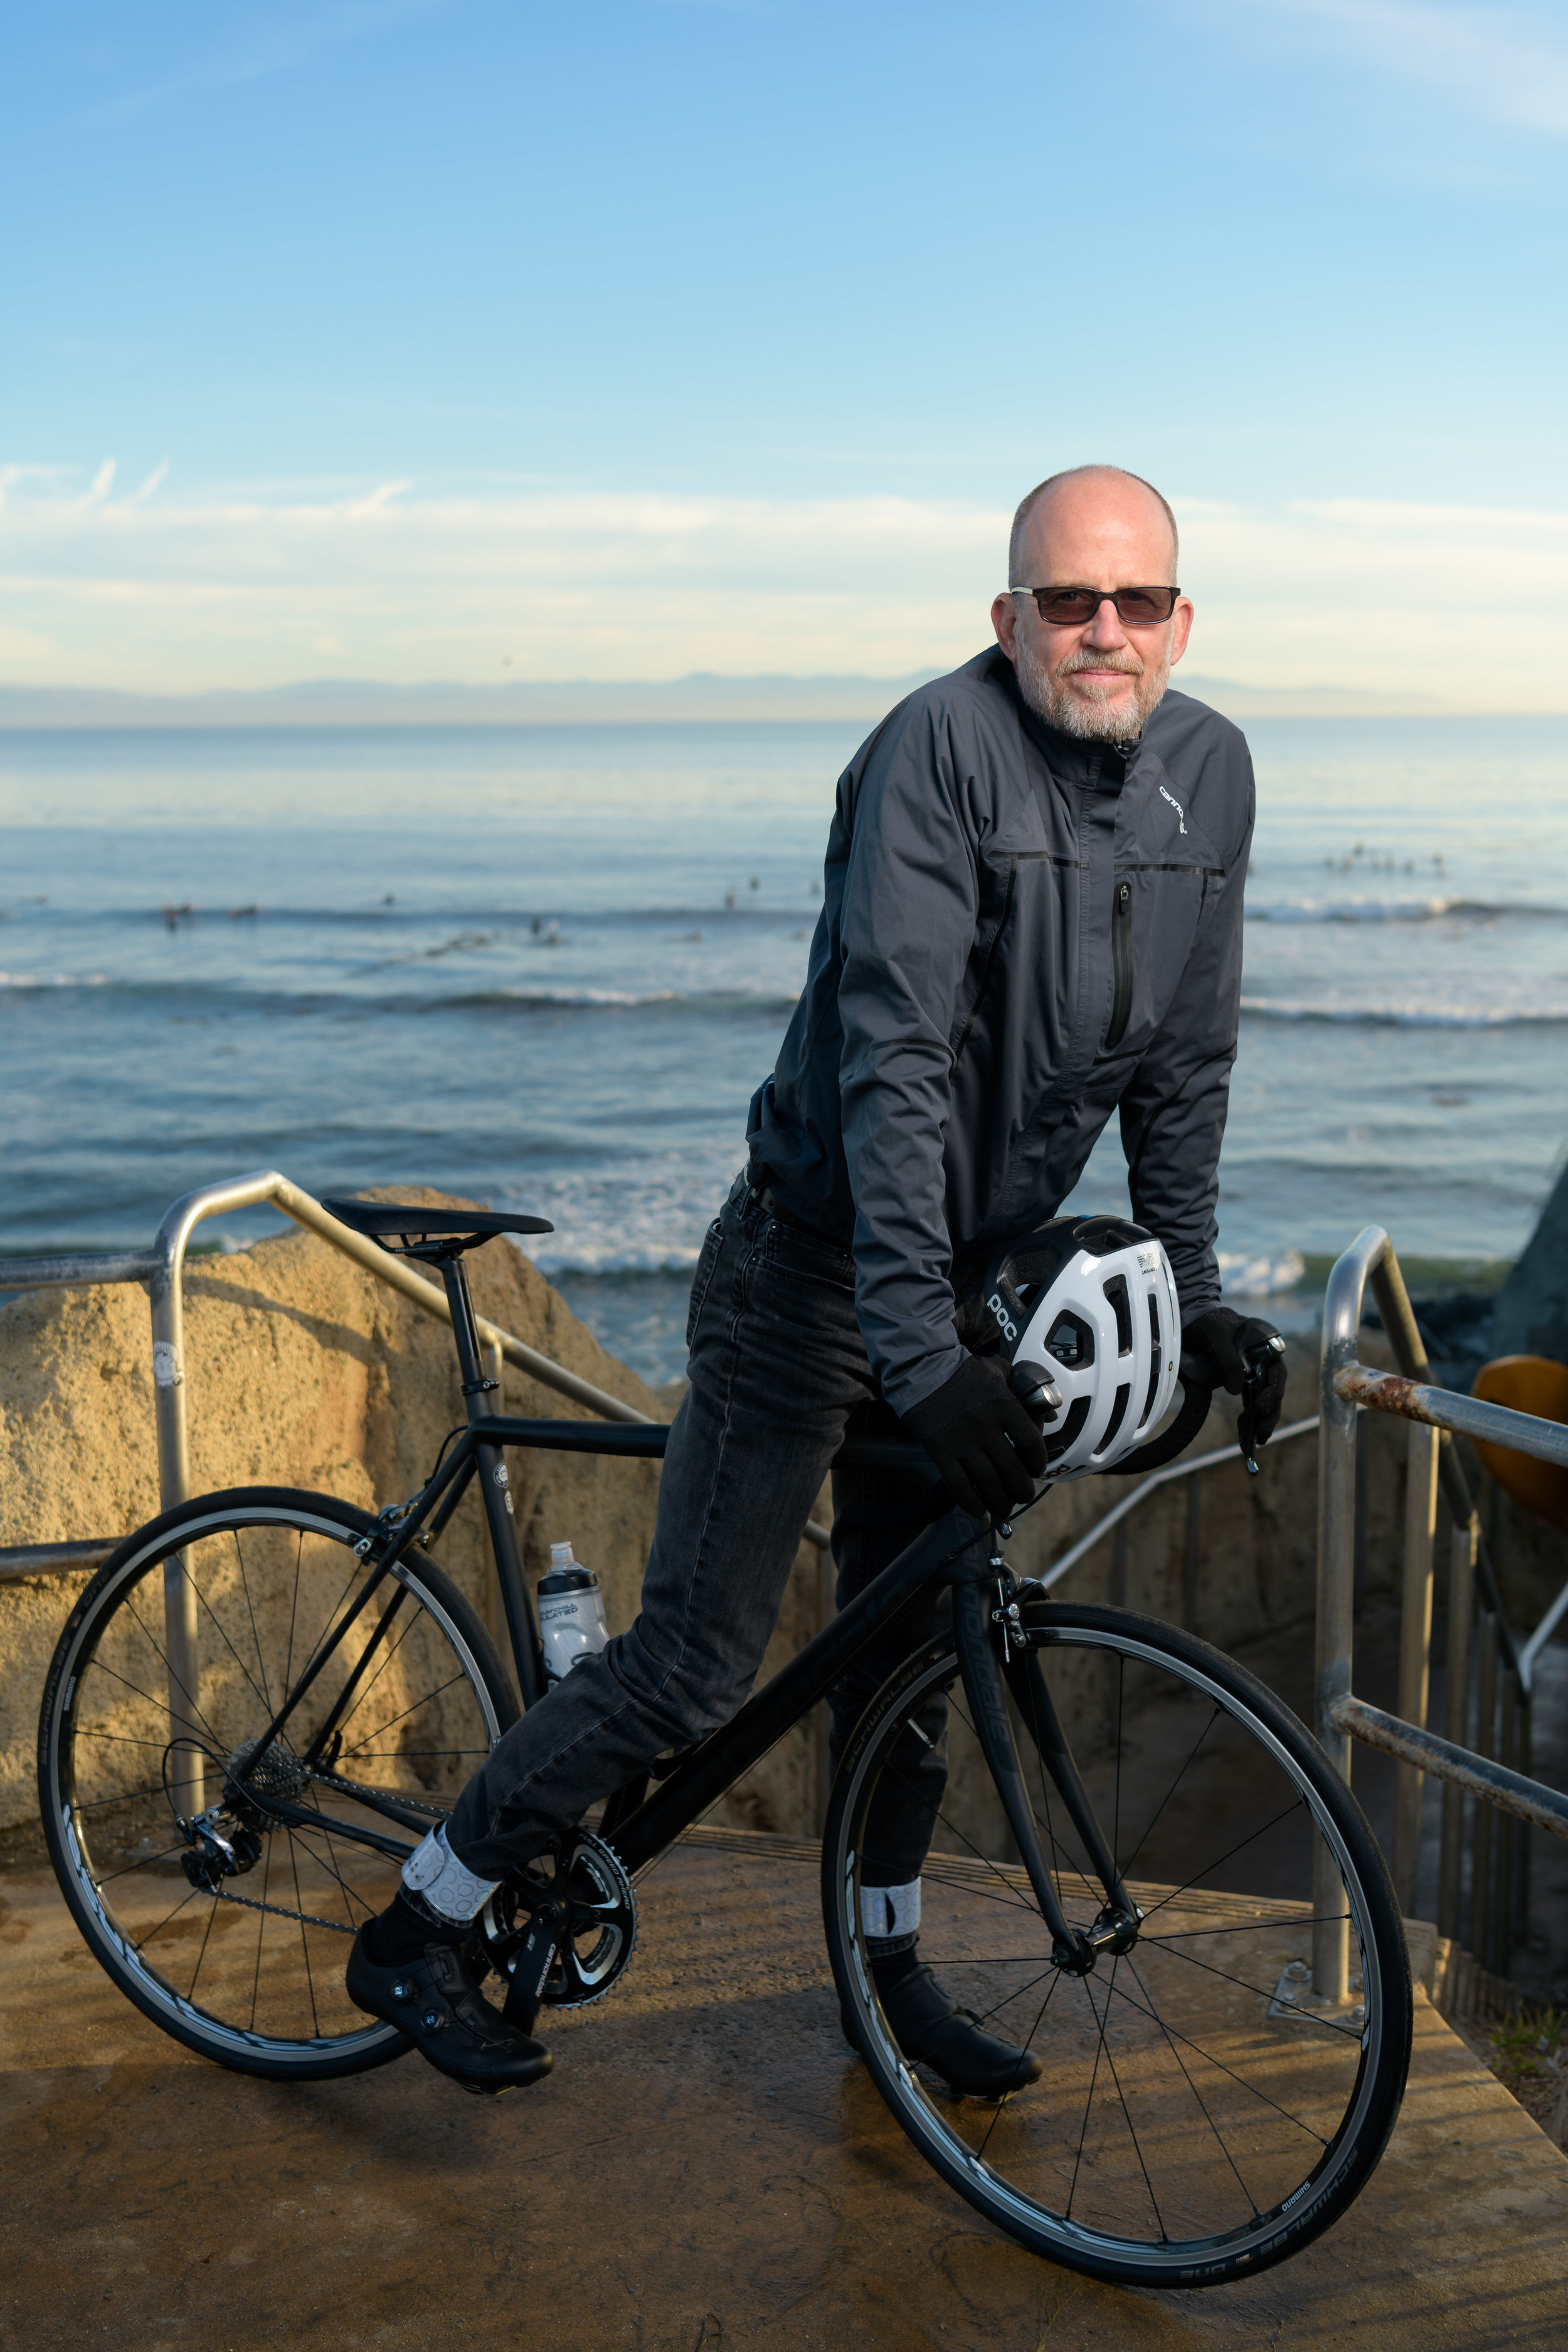 Santa Cruz Editorial Portrait with Bicycle - by Bay Area commercial portrait photographer Chris Schmauch